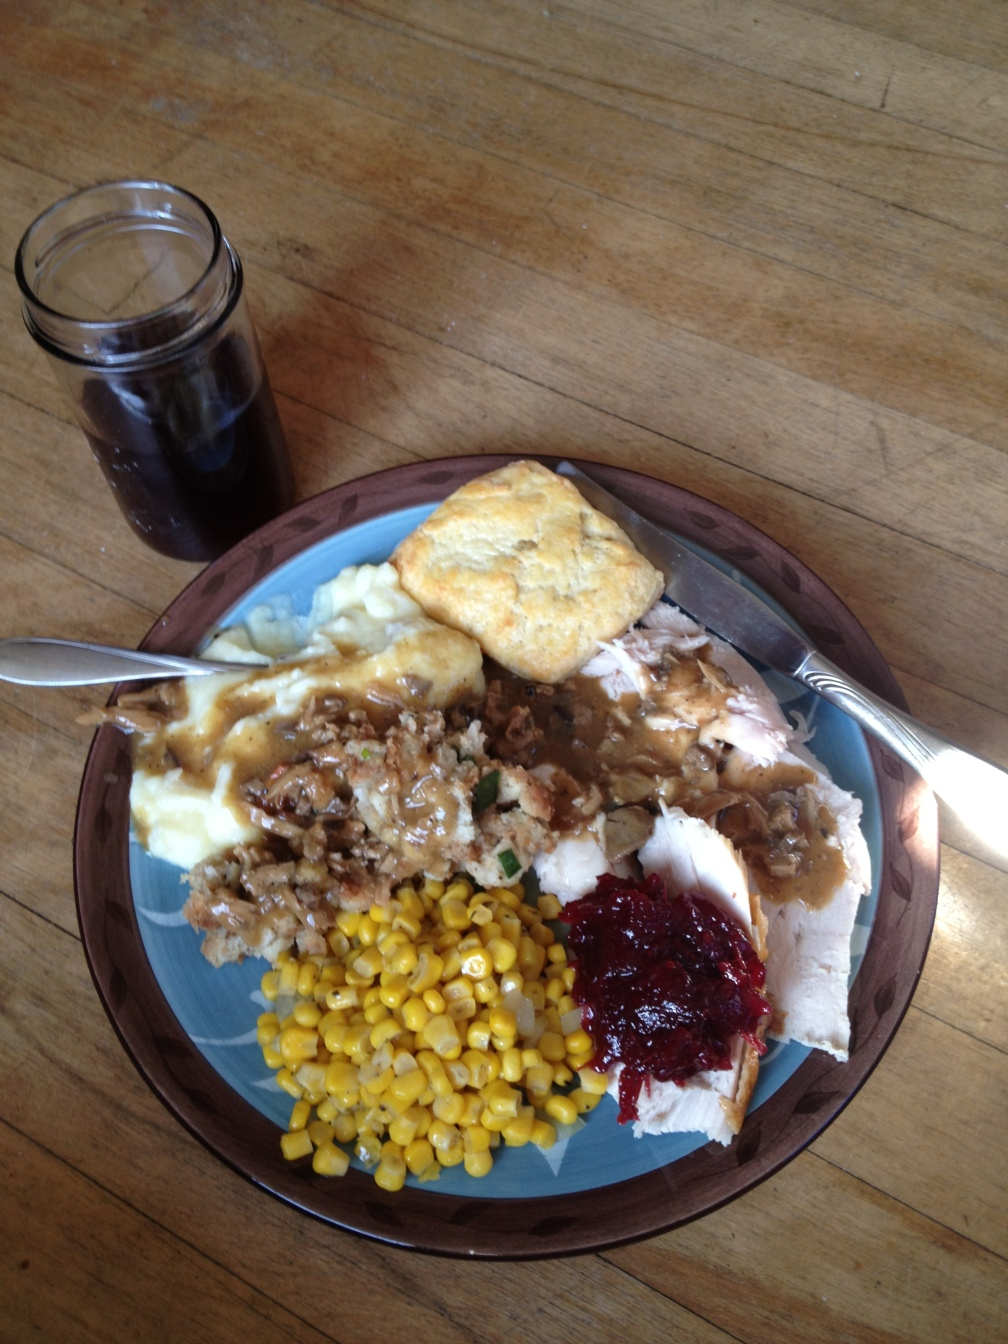 Last year's Thanksgiving plate.